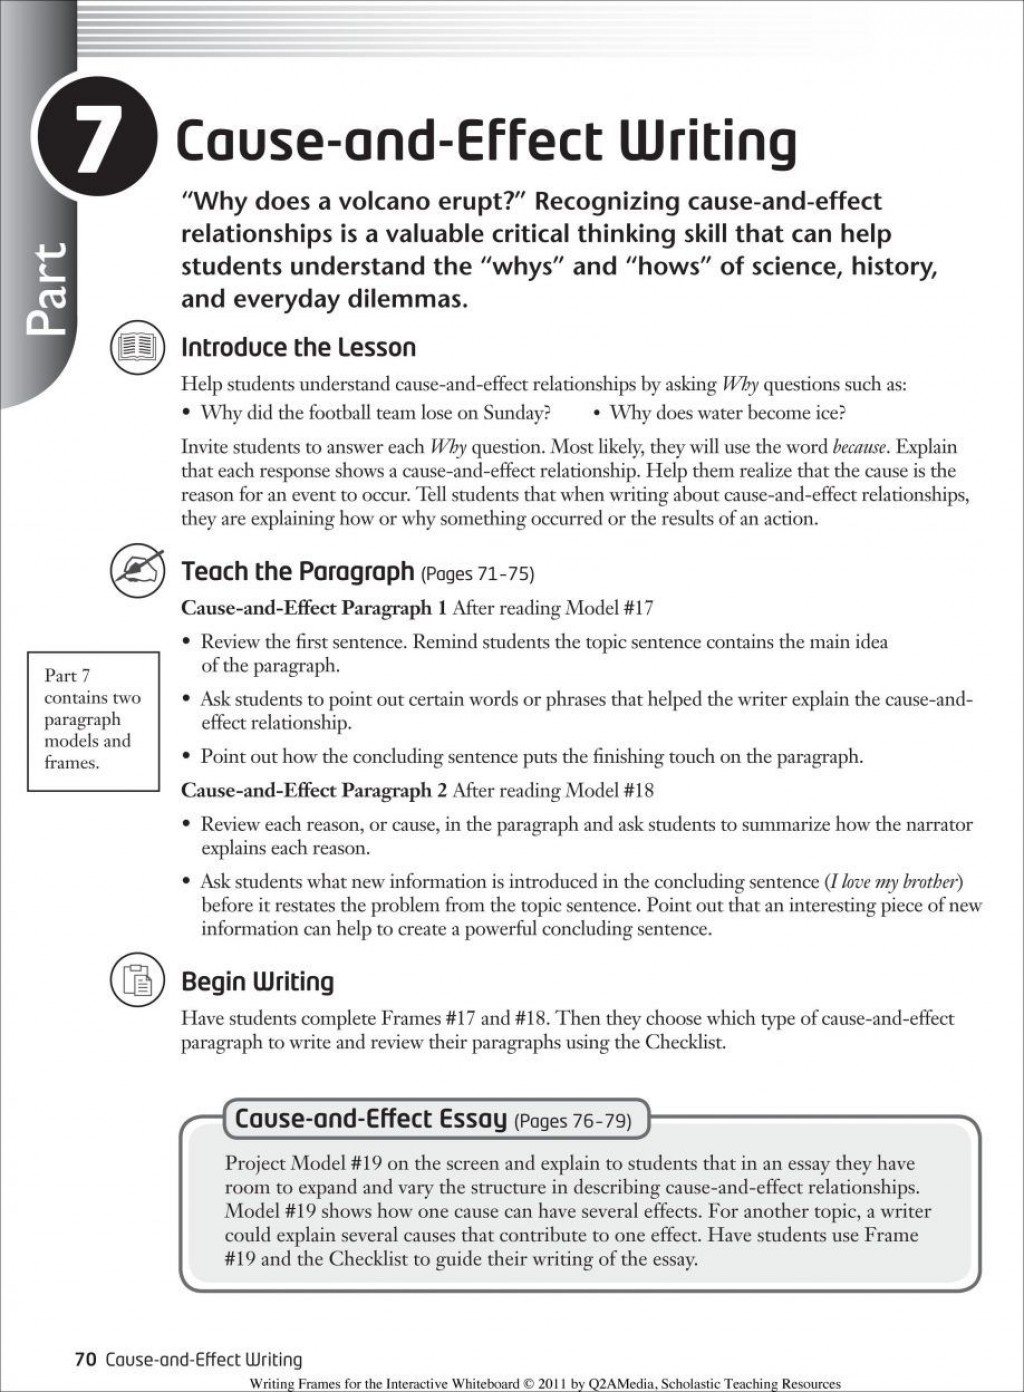 005 Cause And Effect Essay Dreaded Thesis Statement For On Bullying Examples 6th Grade Example Pollution Large